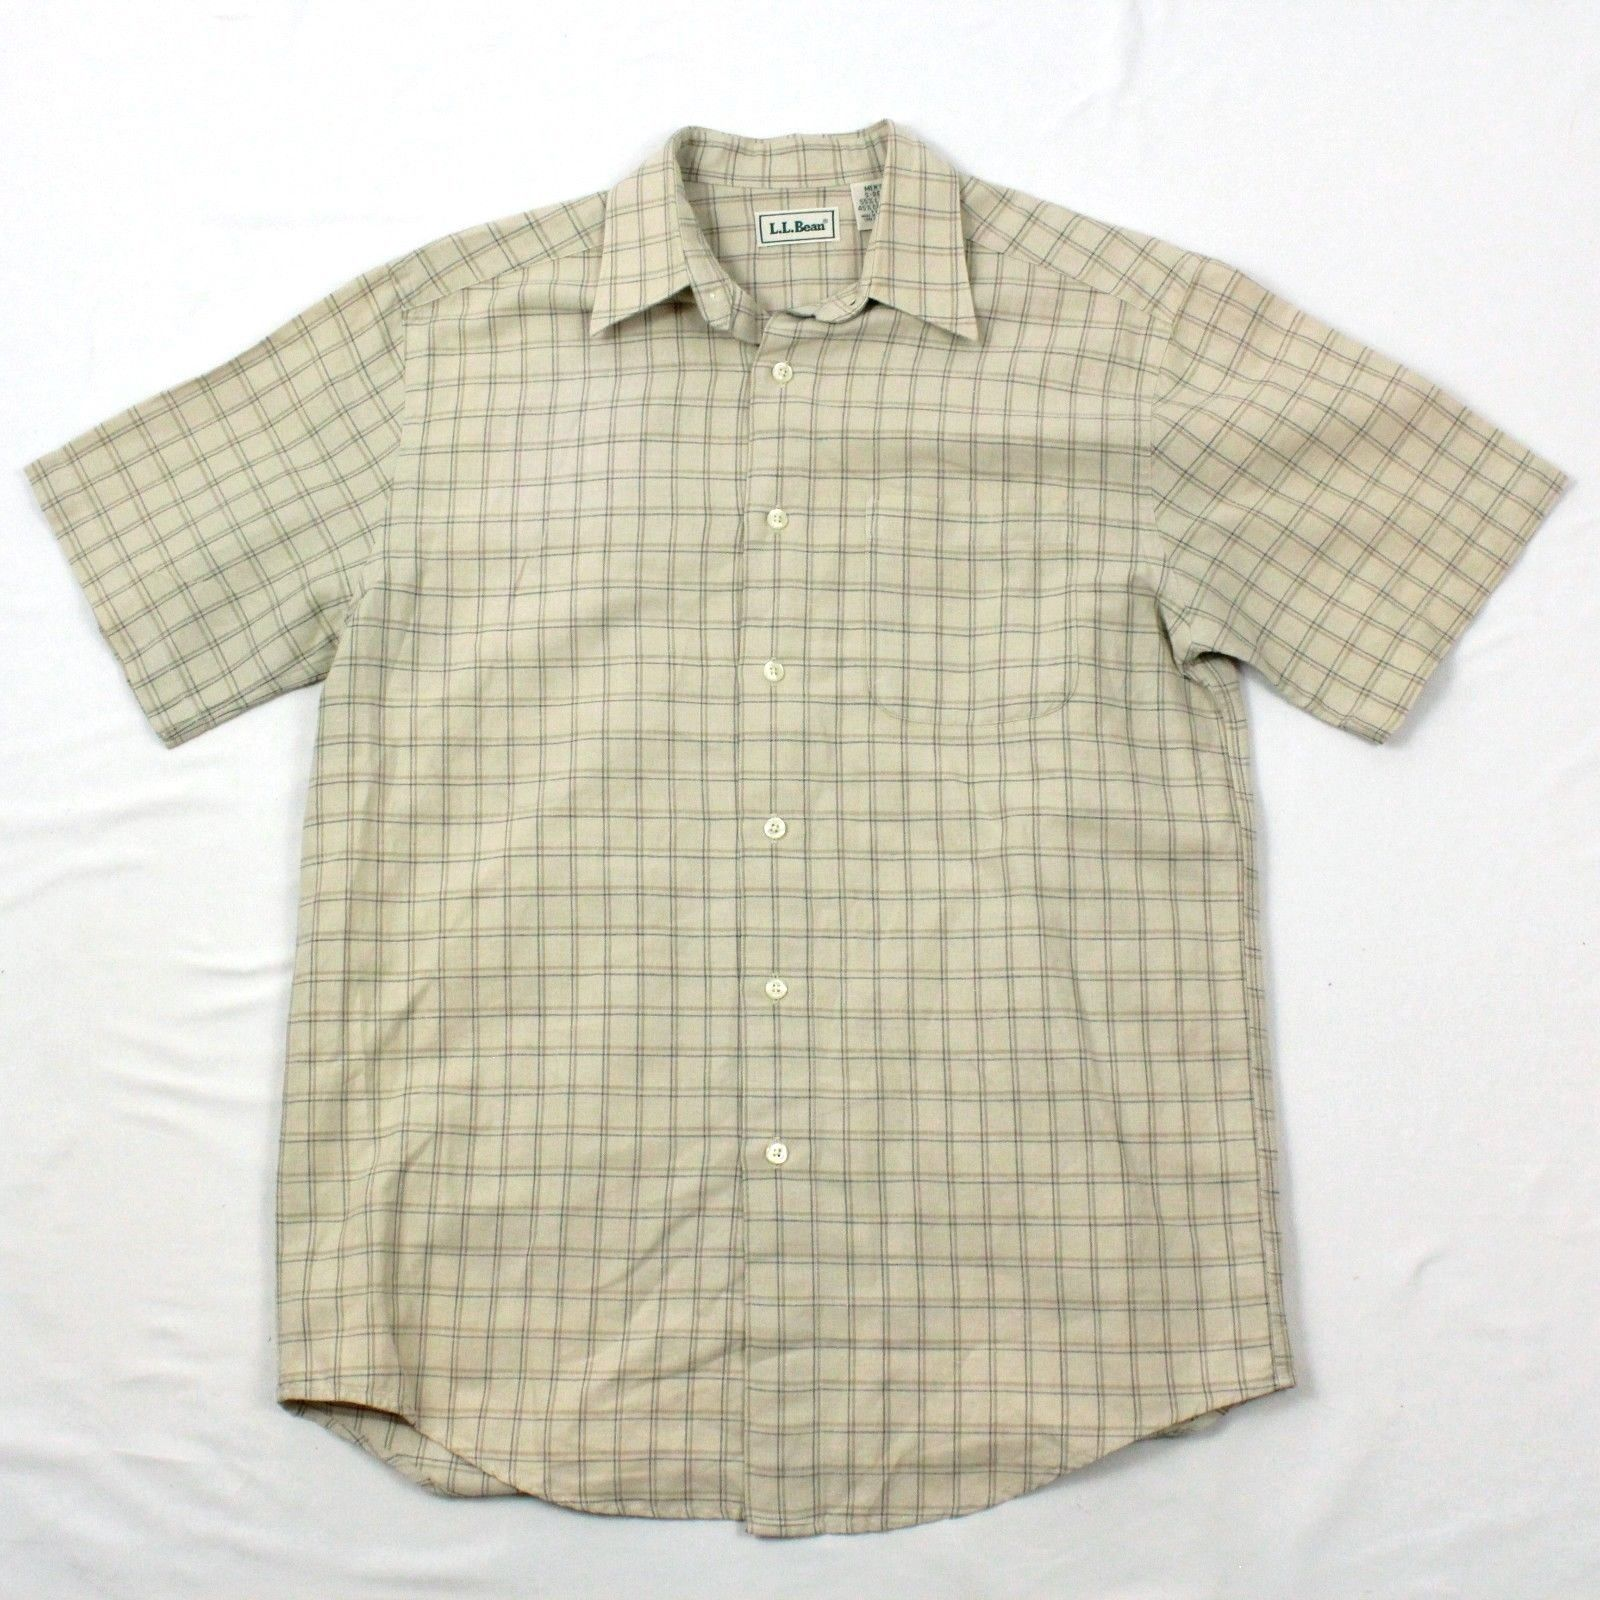 Ll Bean Mens Linen Button Up Shirt Earth Tone Khaki Plaid